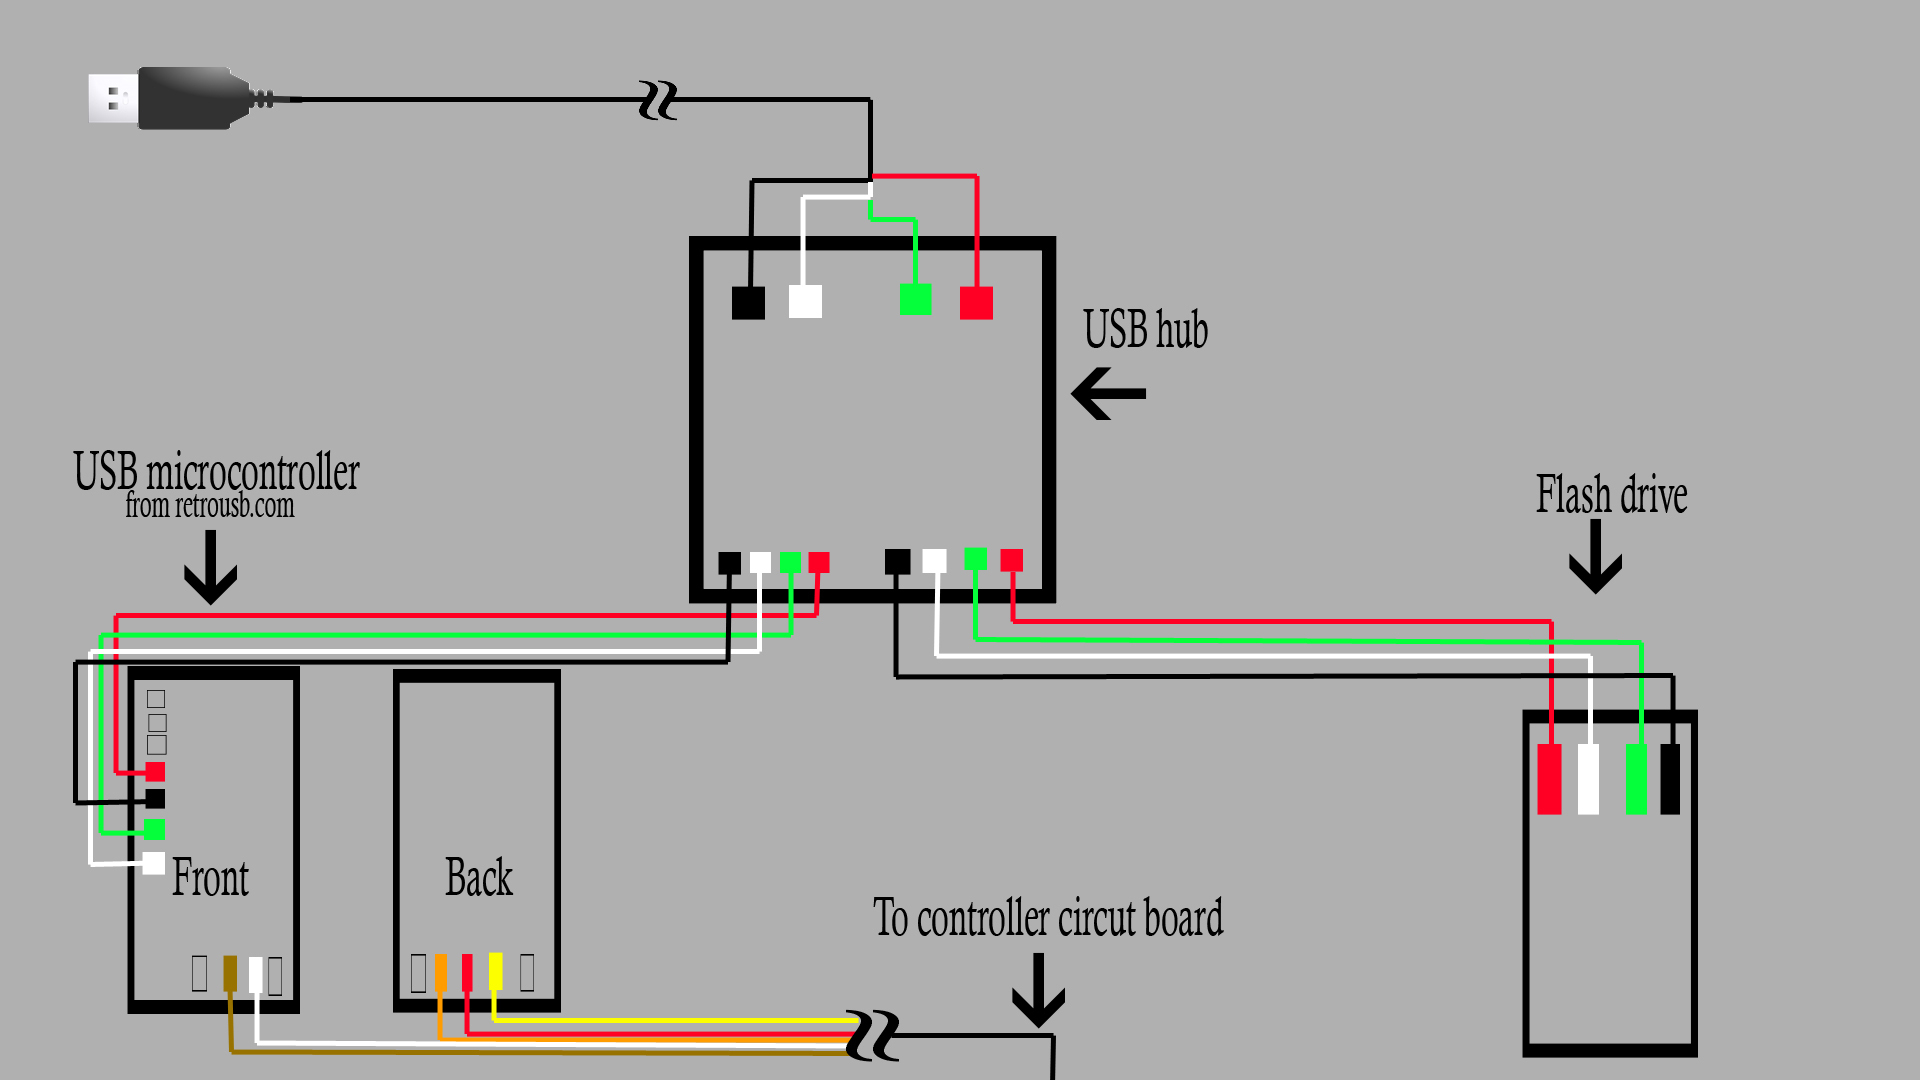 Usb Wire Diagram | Wiring Library - Wiring Diagram Of Fire Wire To Usb